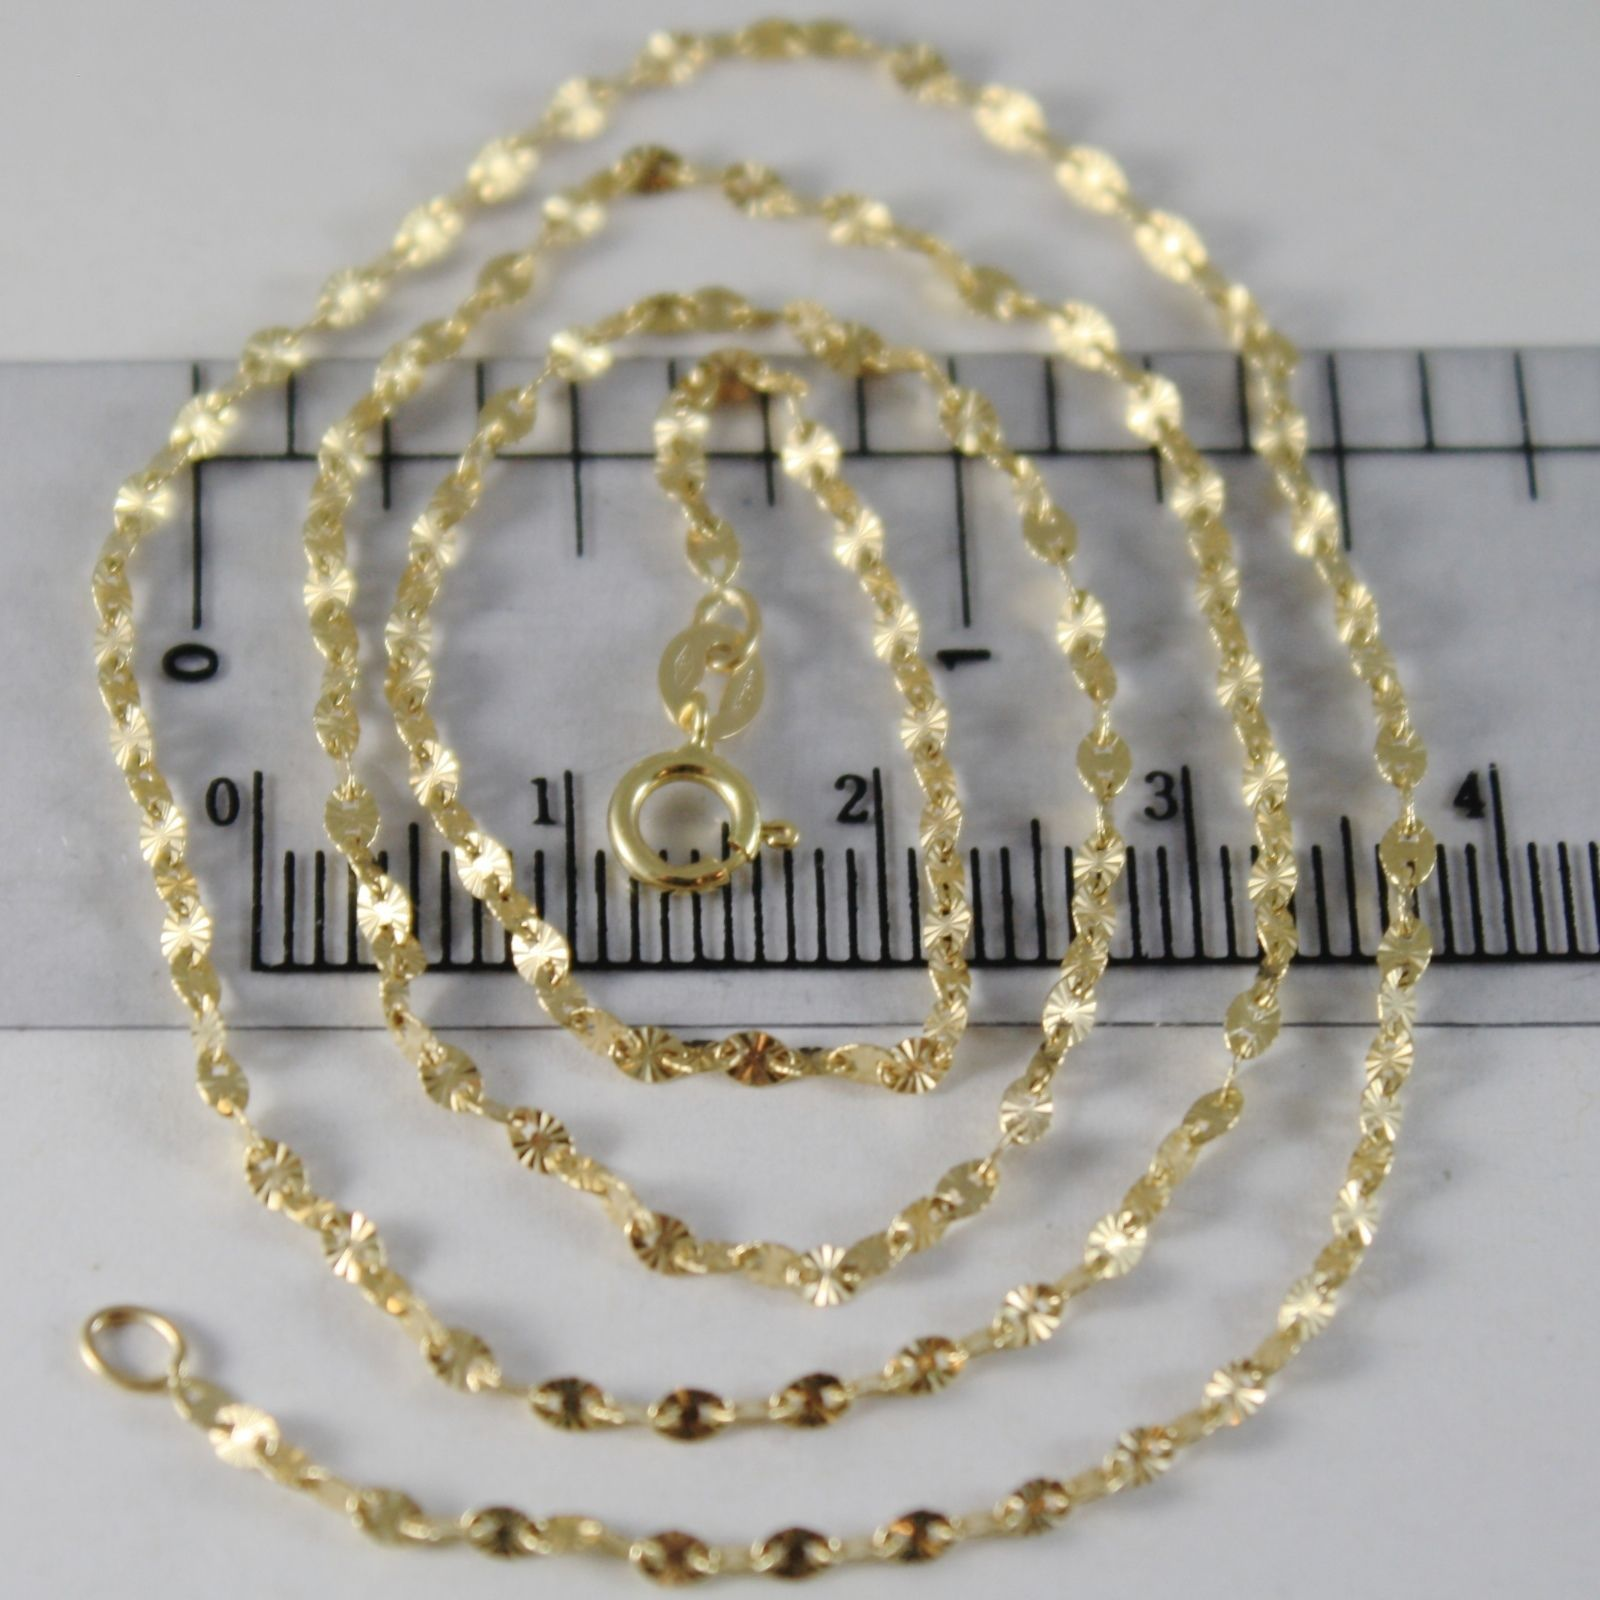 18K YELLOW GOLD CHAIN MINI STAR RAYS OVAL LINK 2 MM, 19.70 INCHES MADE IN ITALY